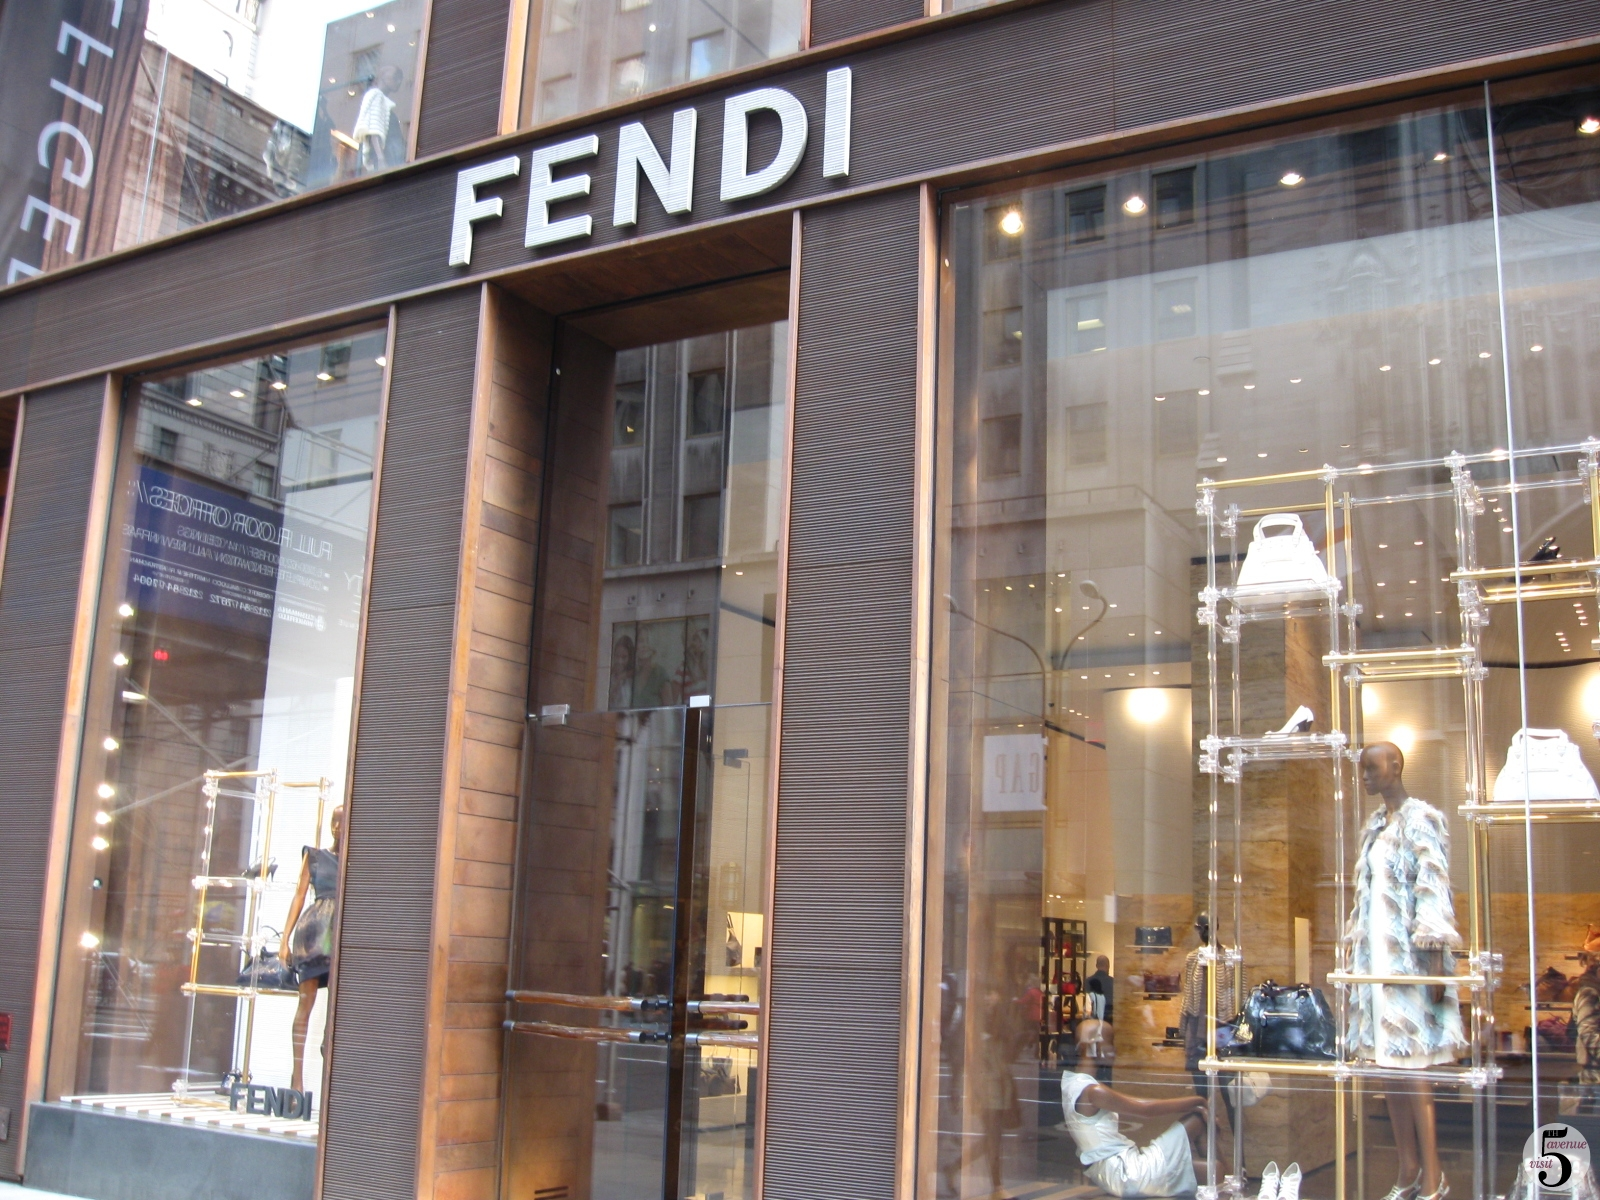 Fendi 677 5th Ave